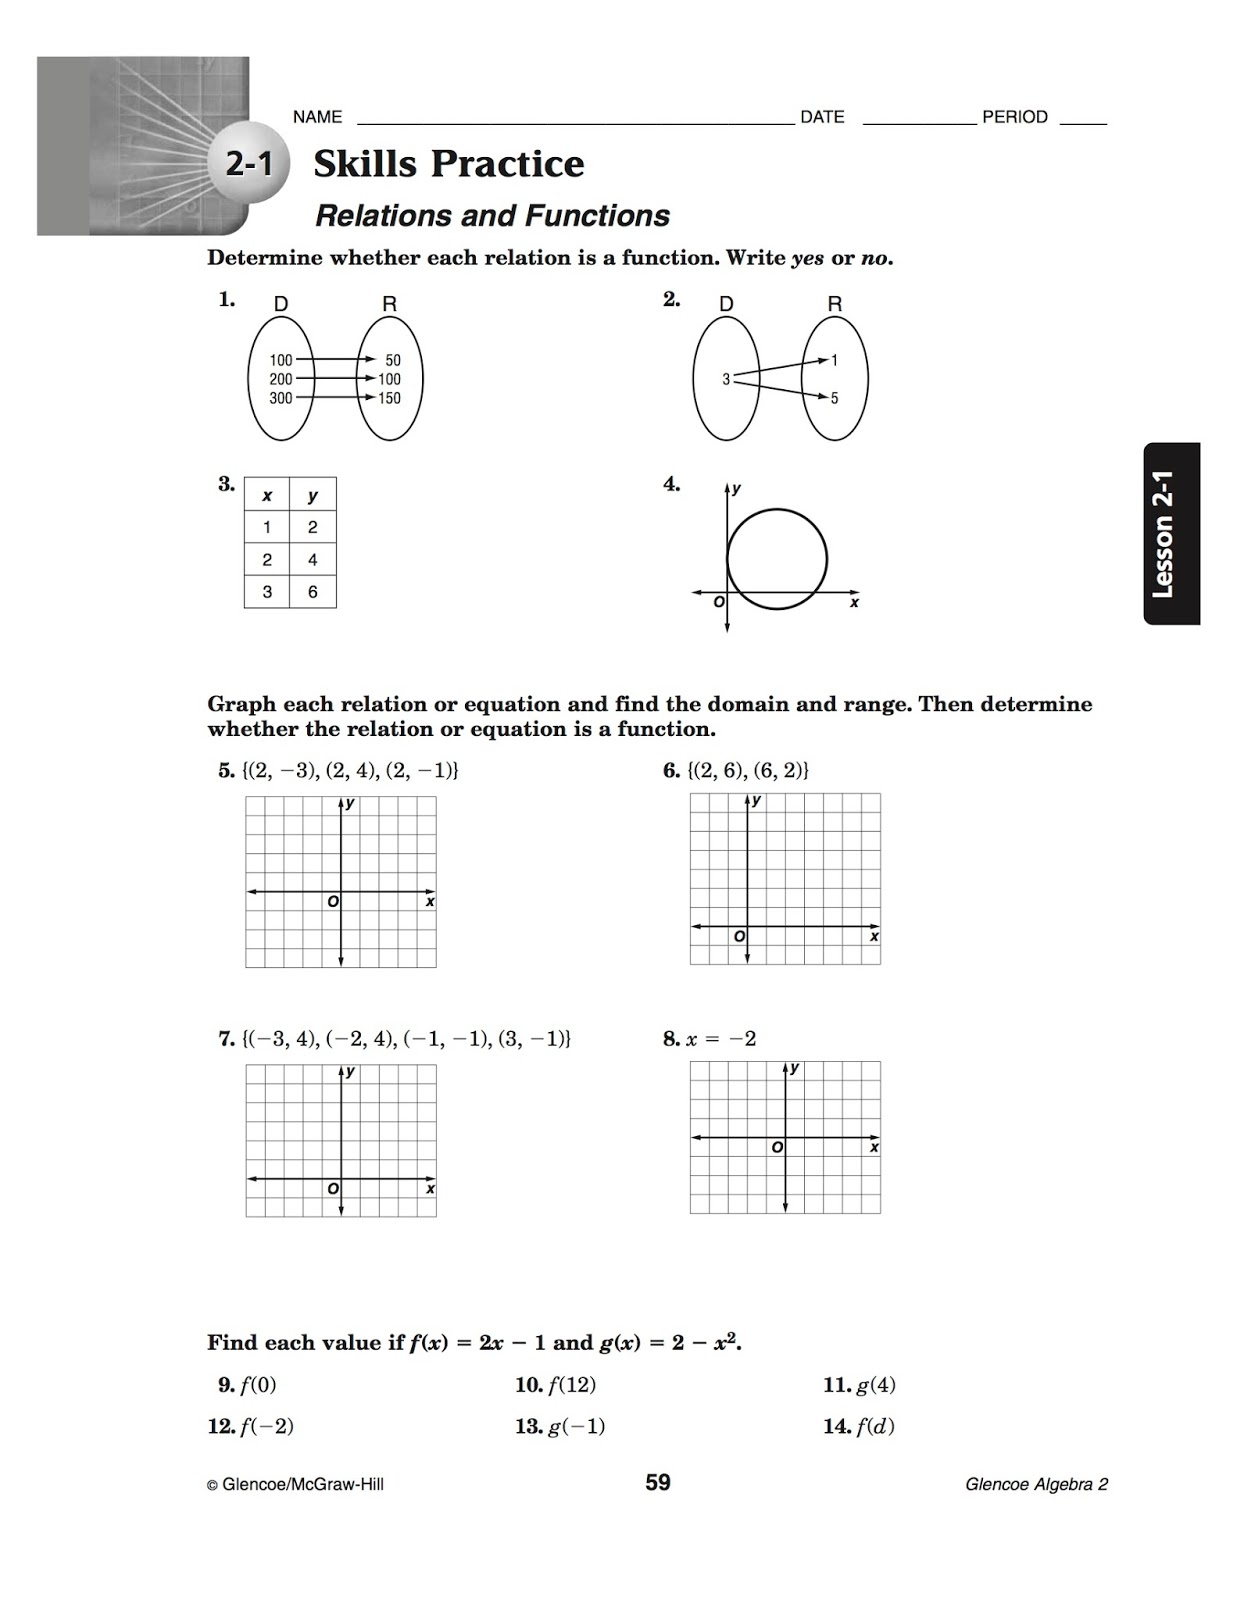 BACS Algebra 2 – Relations and Functions Worksheet